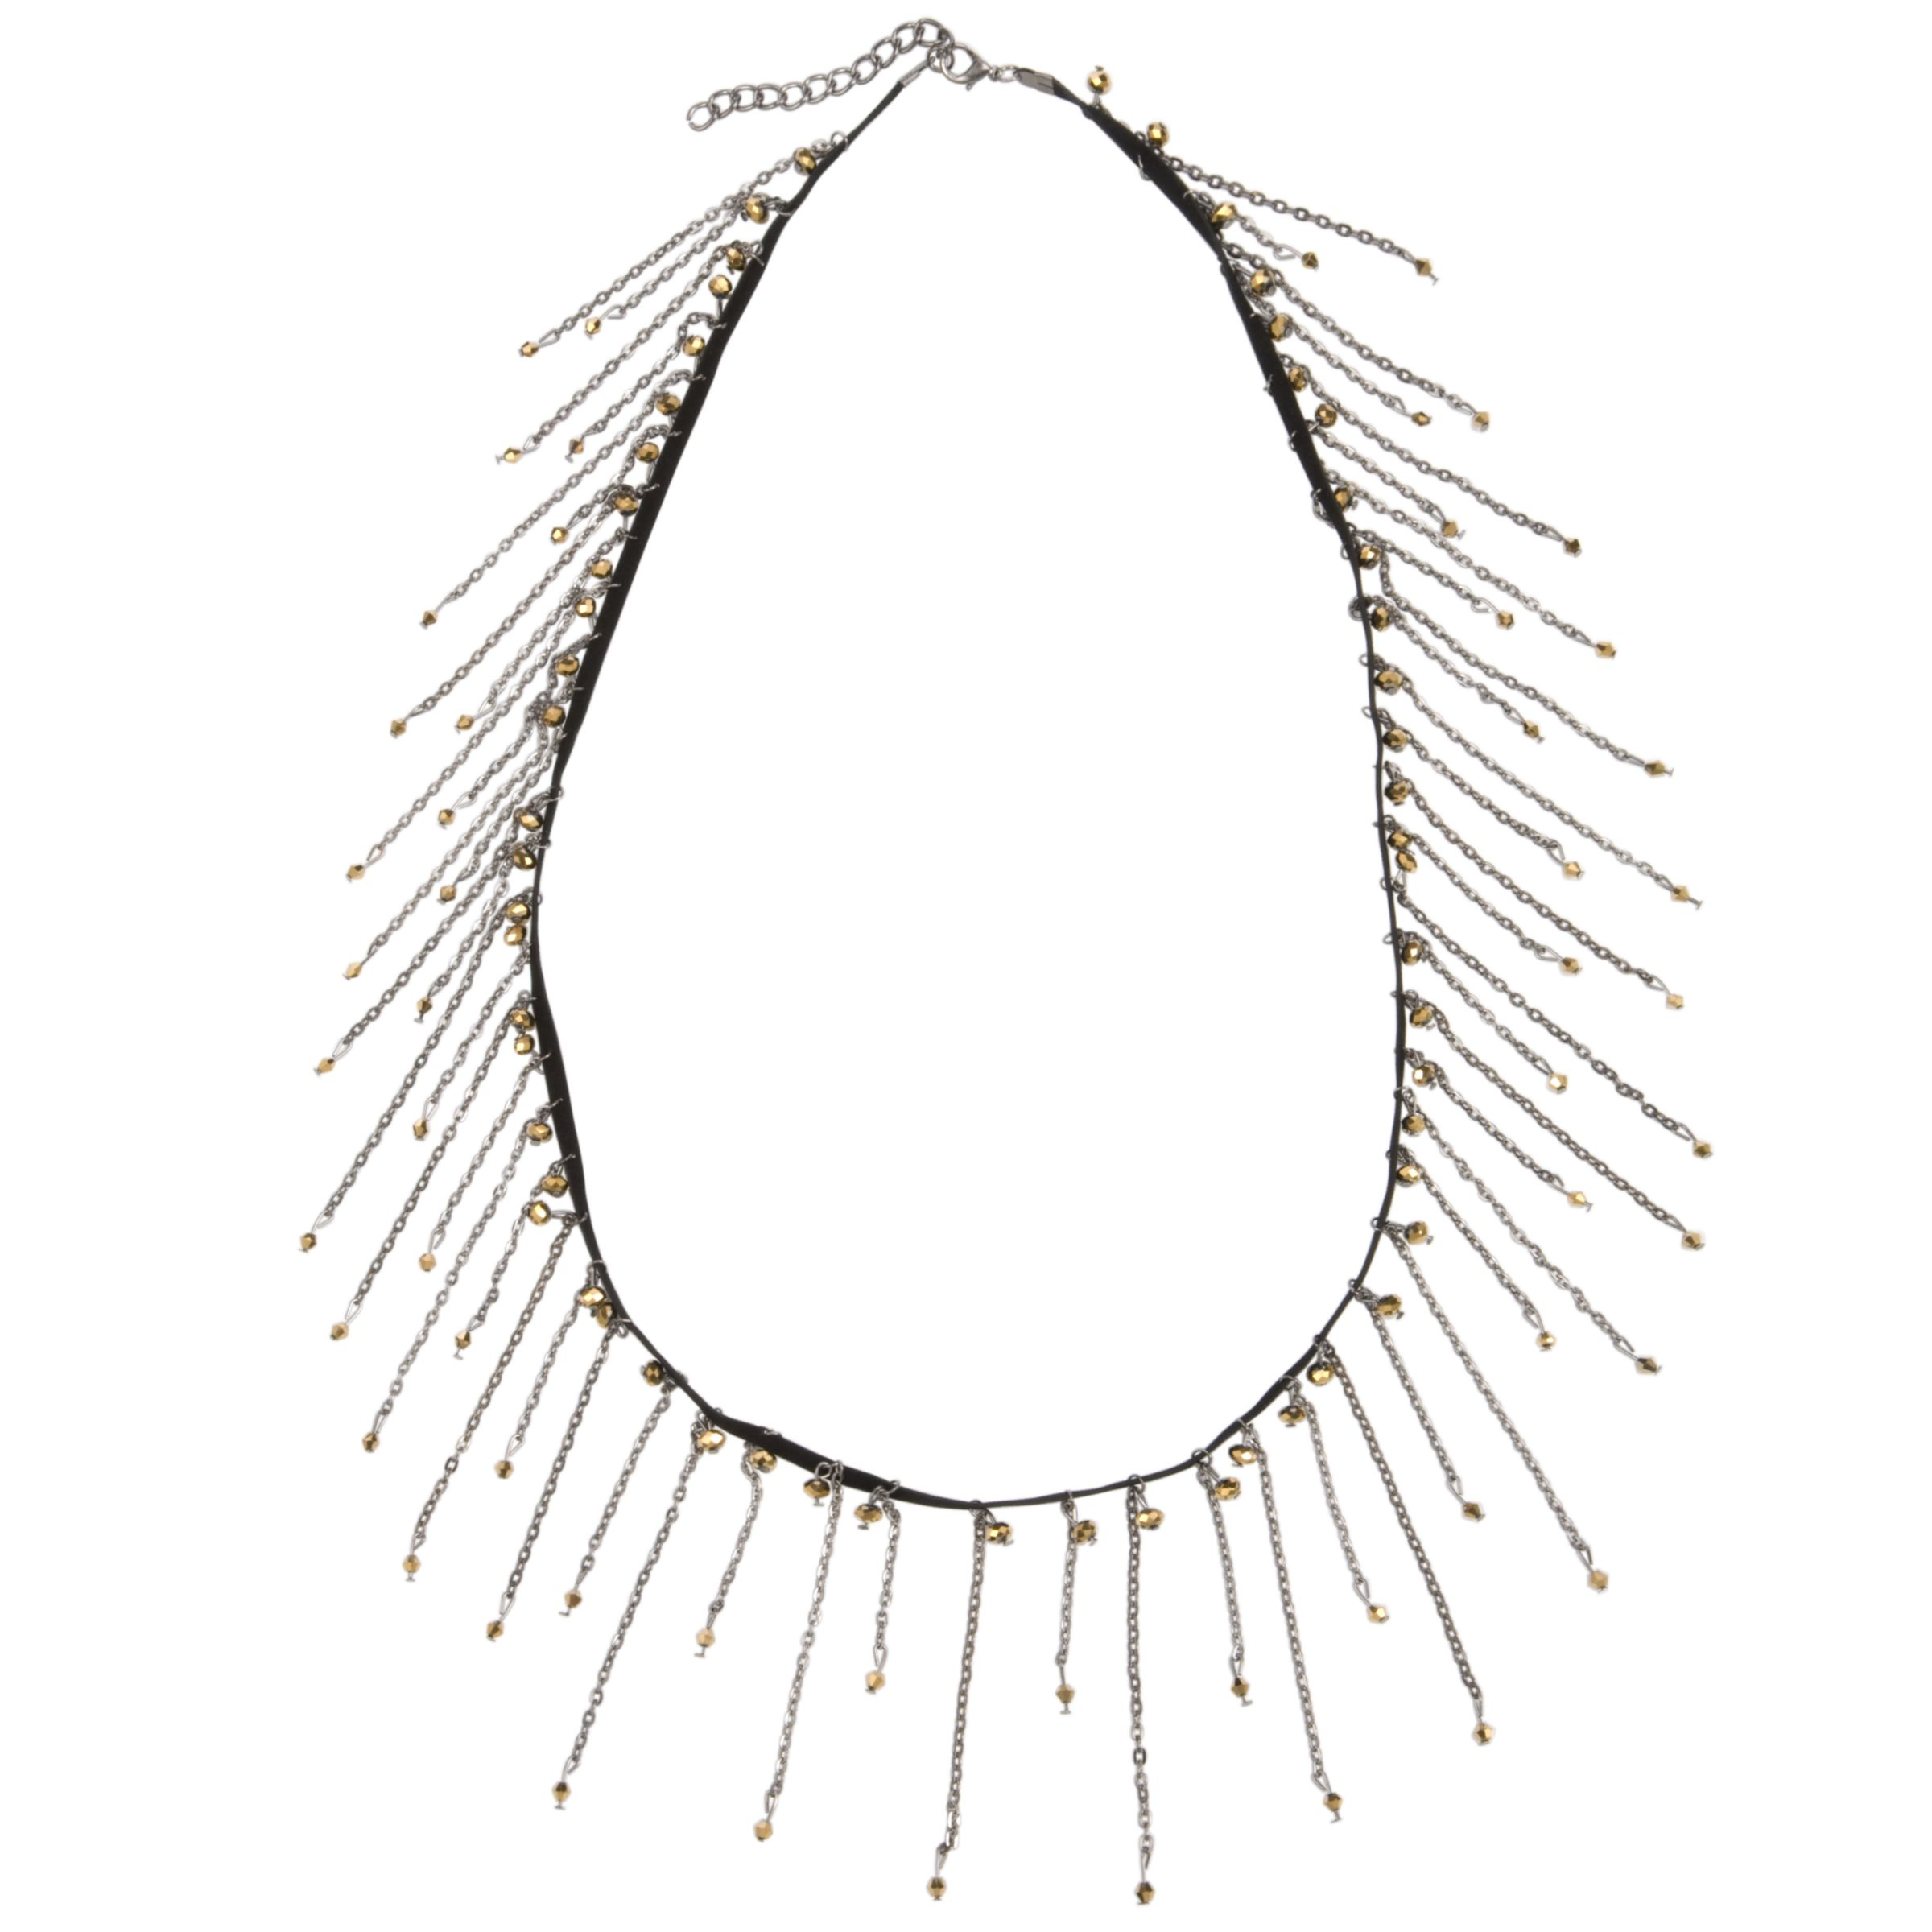 Adele Marie Leather, Tassle and Bead Necklace